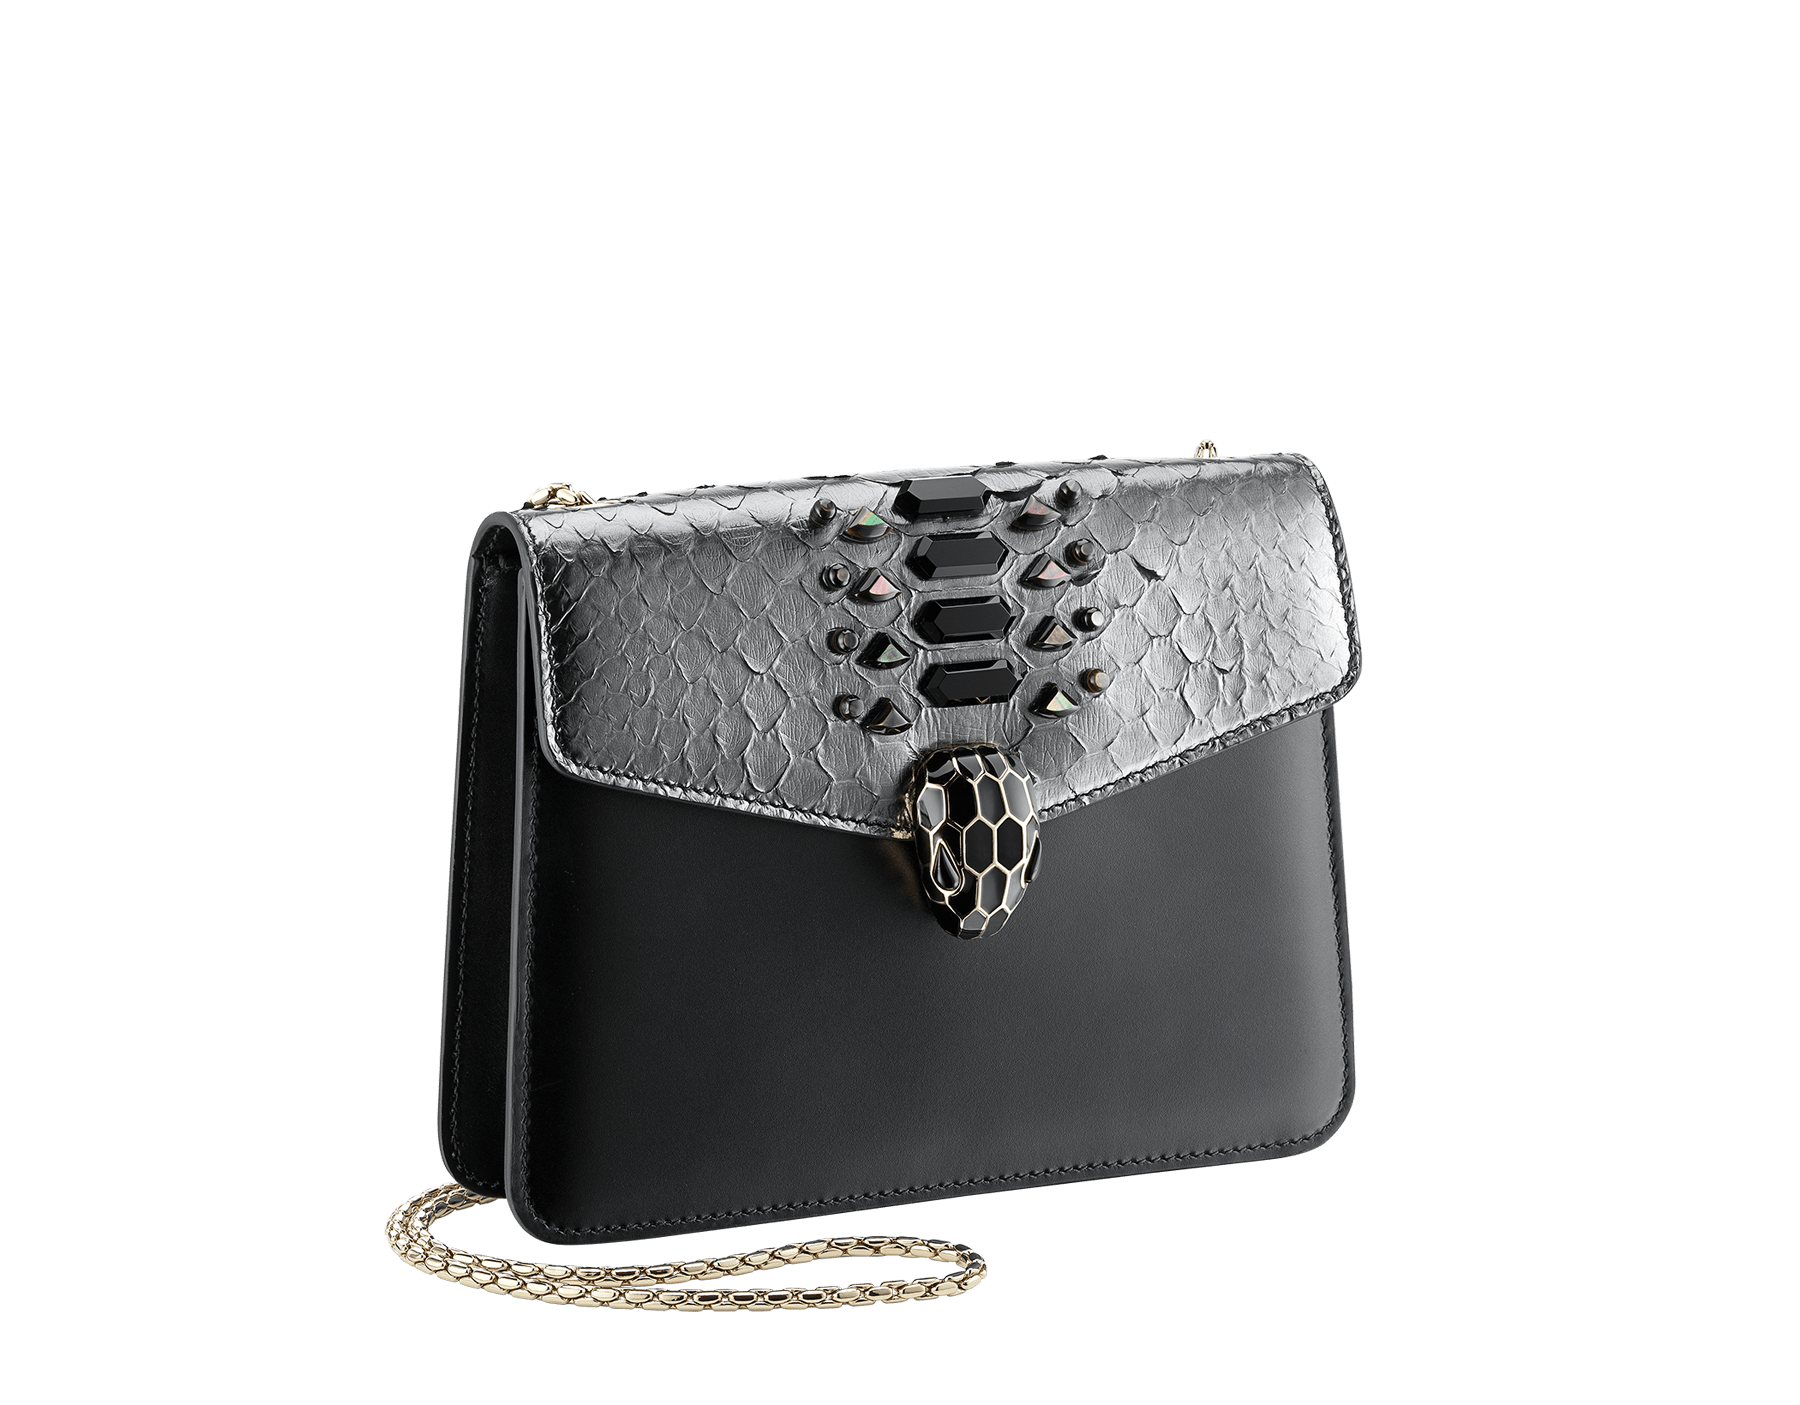 """Serpenti Forever"" crossbody bag in rosa di francia smooth calf leather with onyx scales applied on the flap. Iconic snake head closure in light gold plated brass enriched with black enamel and black onyx eyes. 422-GEM image 2"